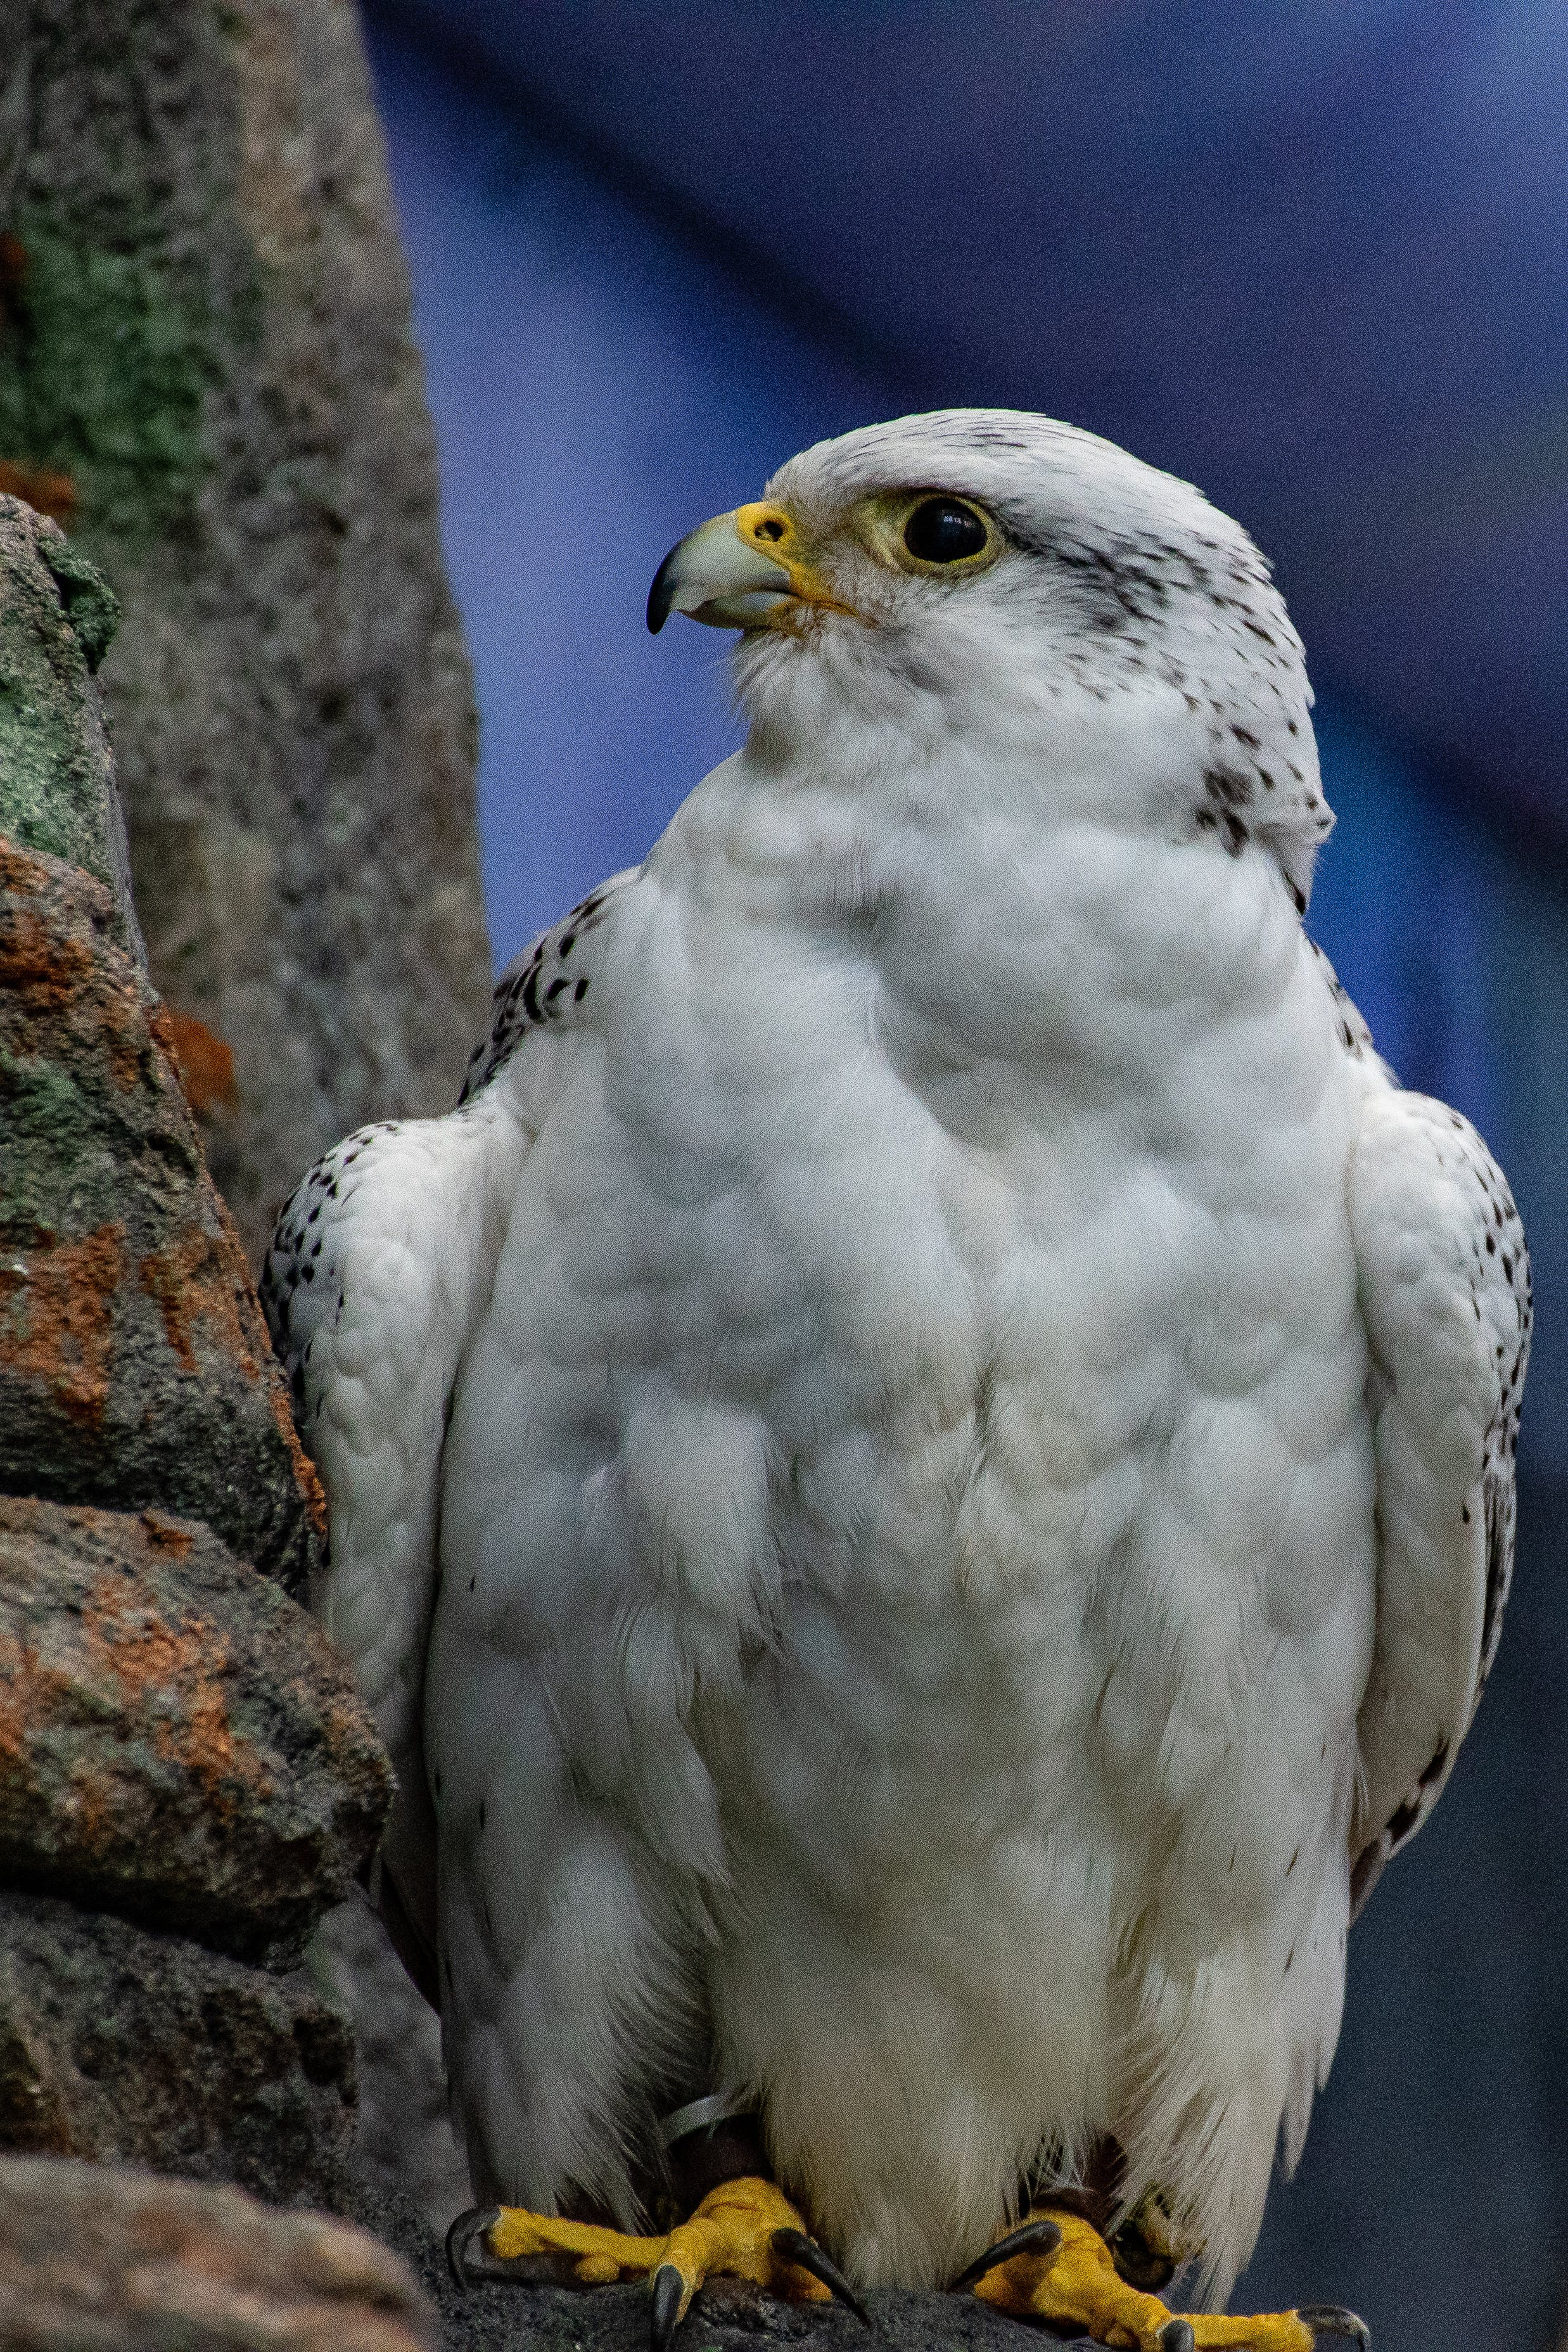 Selective Focus Photo of White and Black Hawk Perching on Gray Concrete Pavement